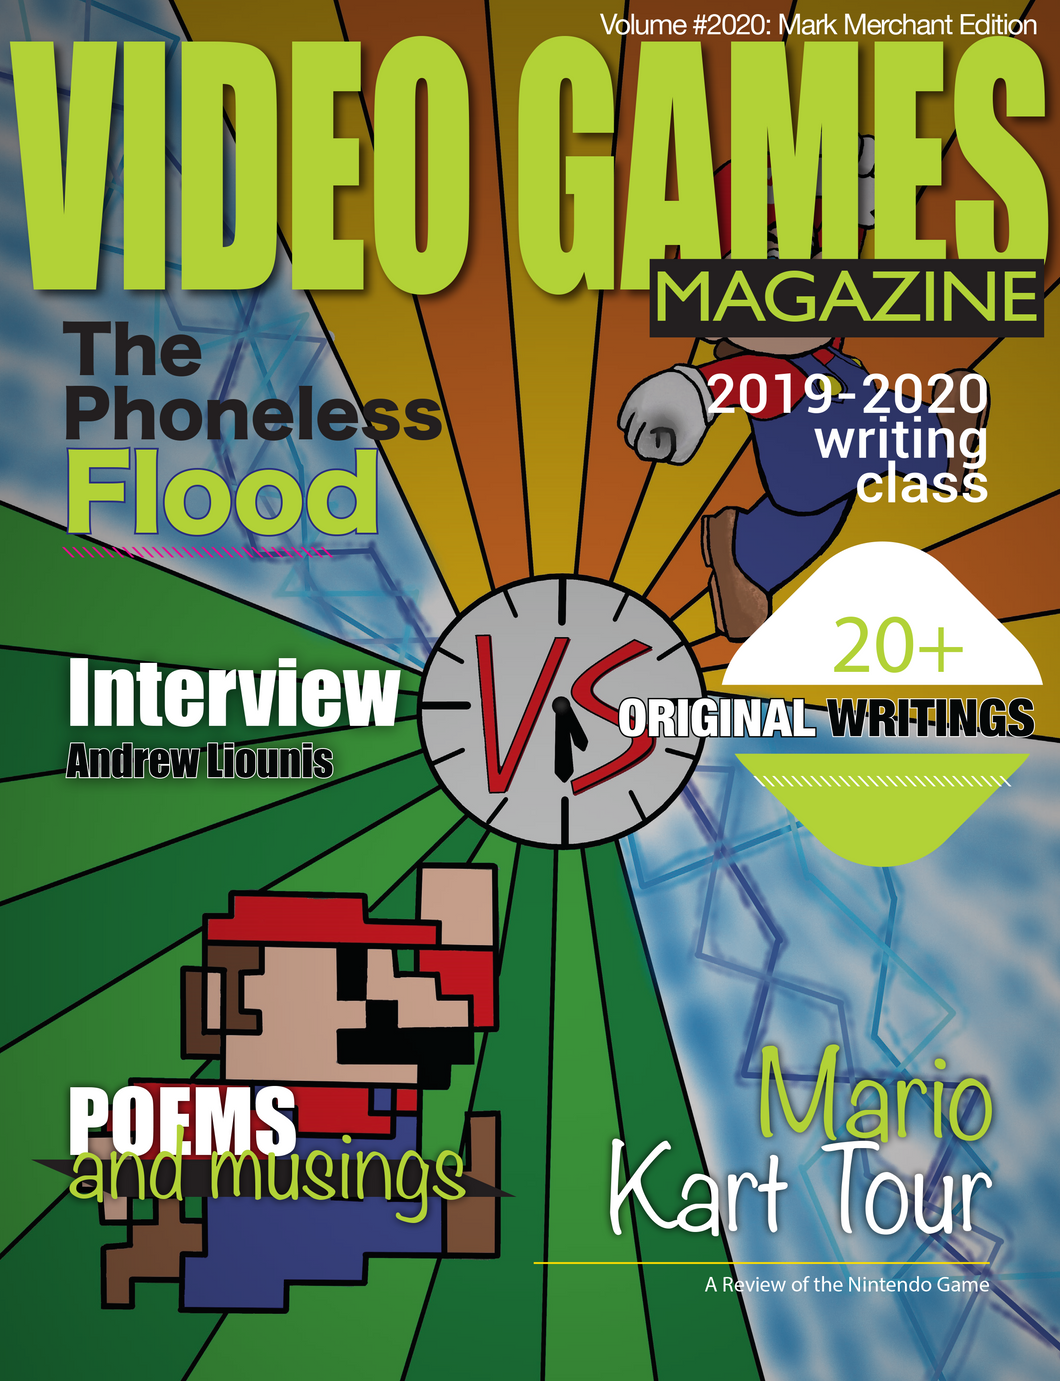 Video Games Magazine: Volume #2020: Mark Merchant Edition